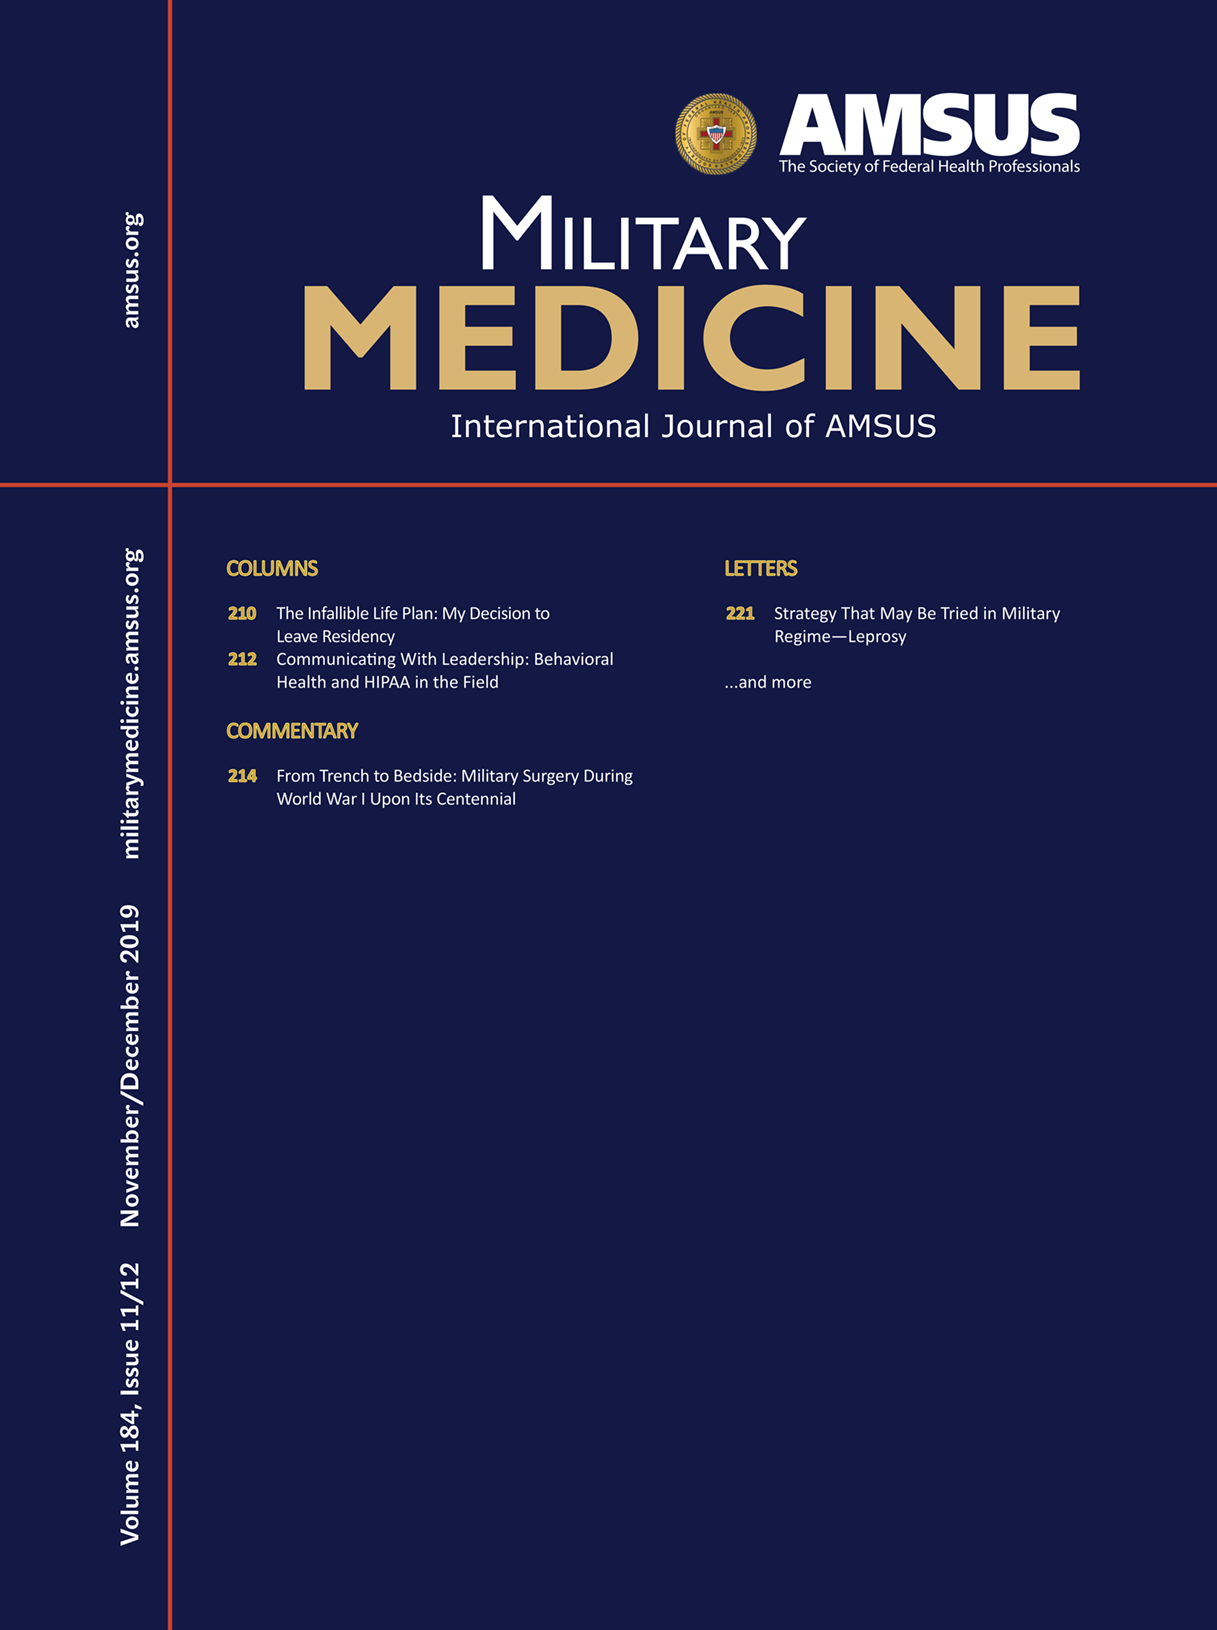 Military Medicine journal